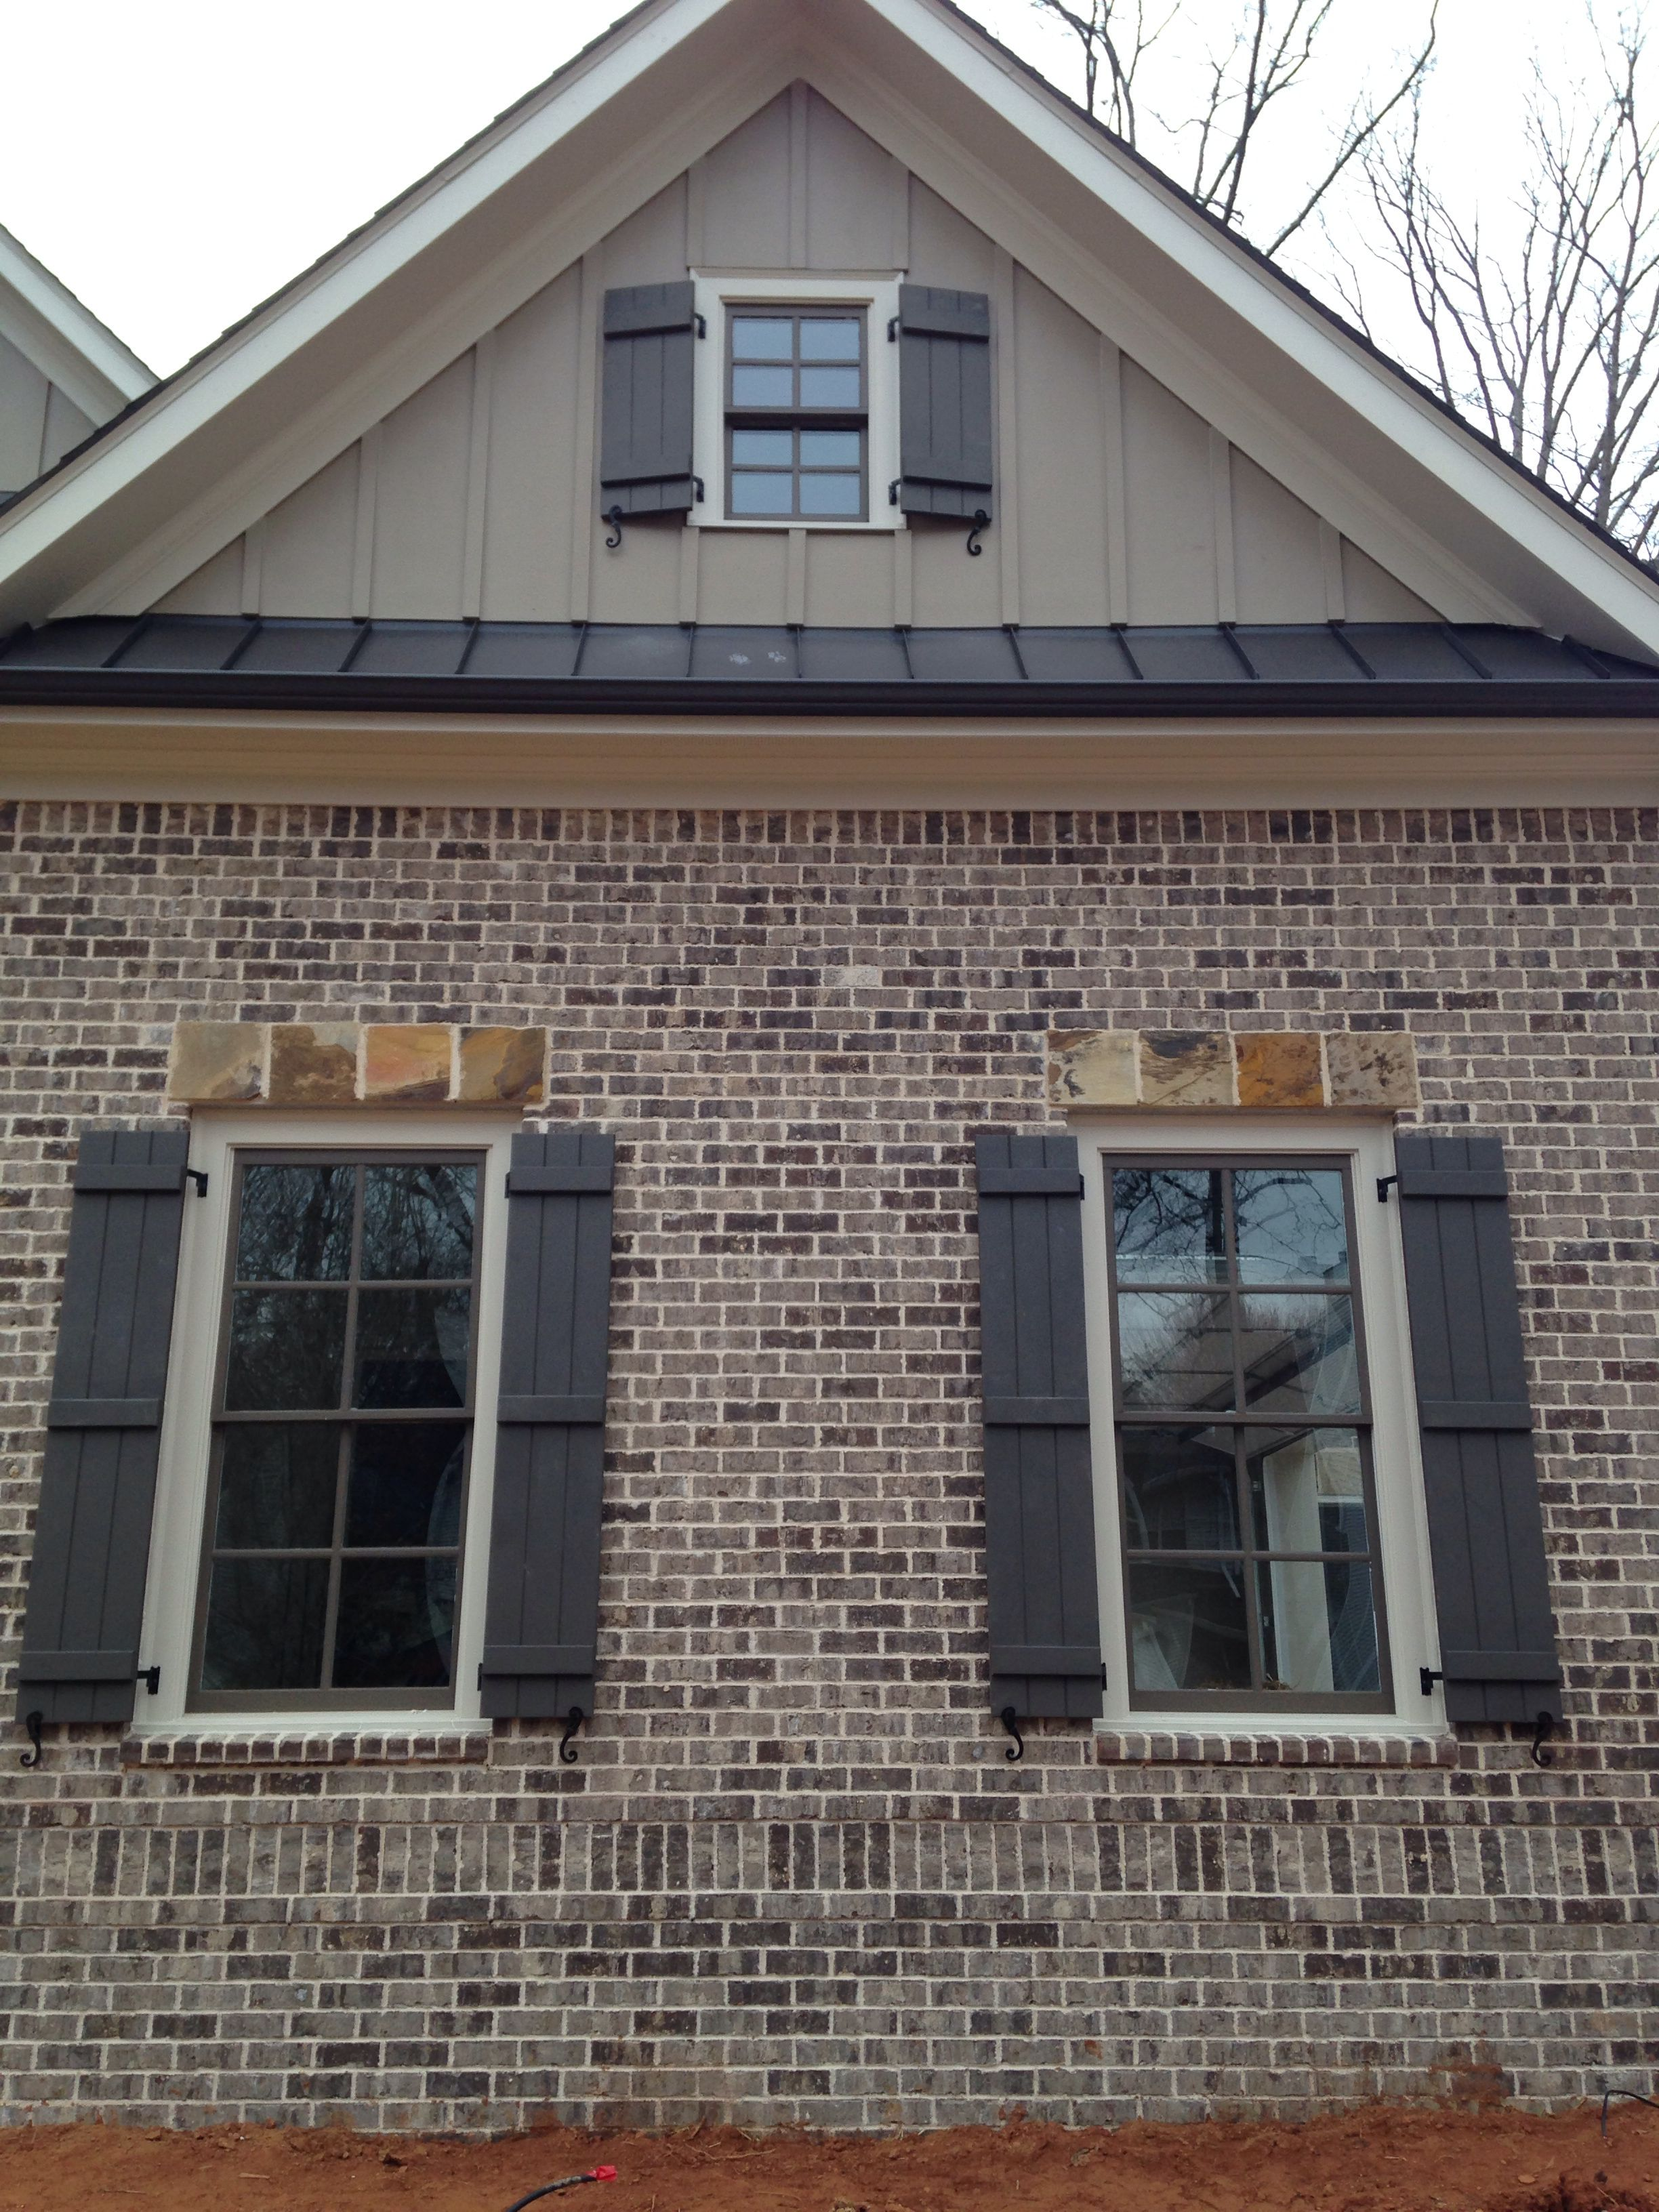 Brick marshton mortar ivory 2014 hot bricks - Exterior house paint colors 2014 ...